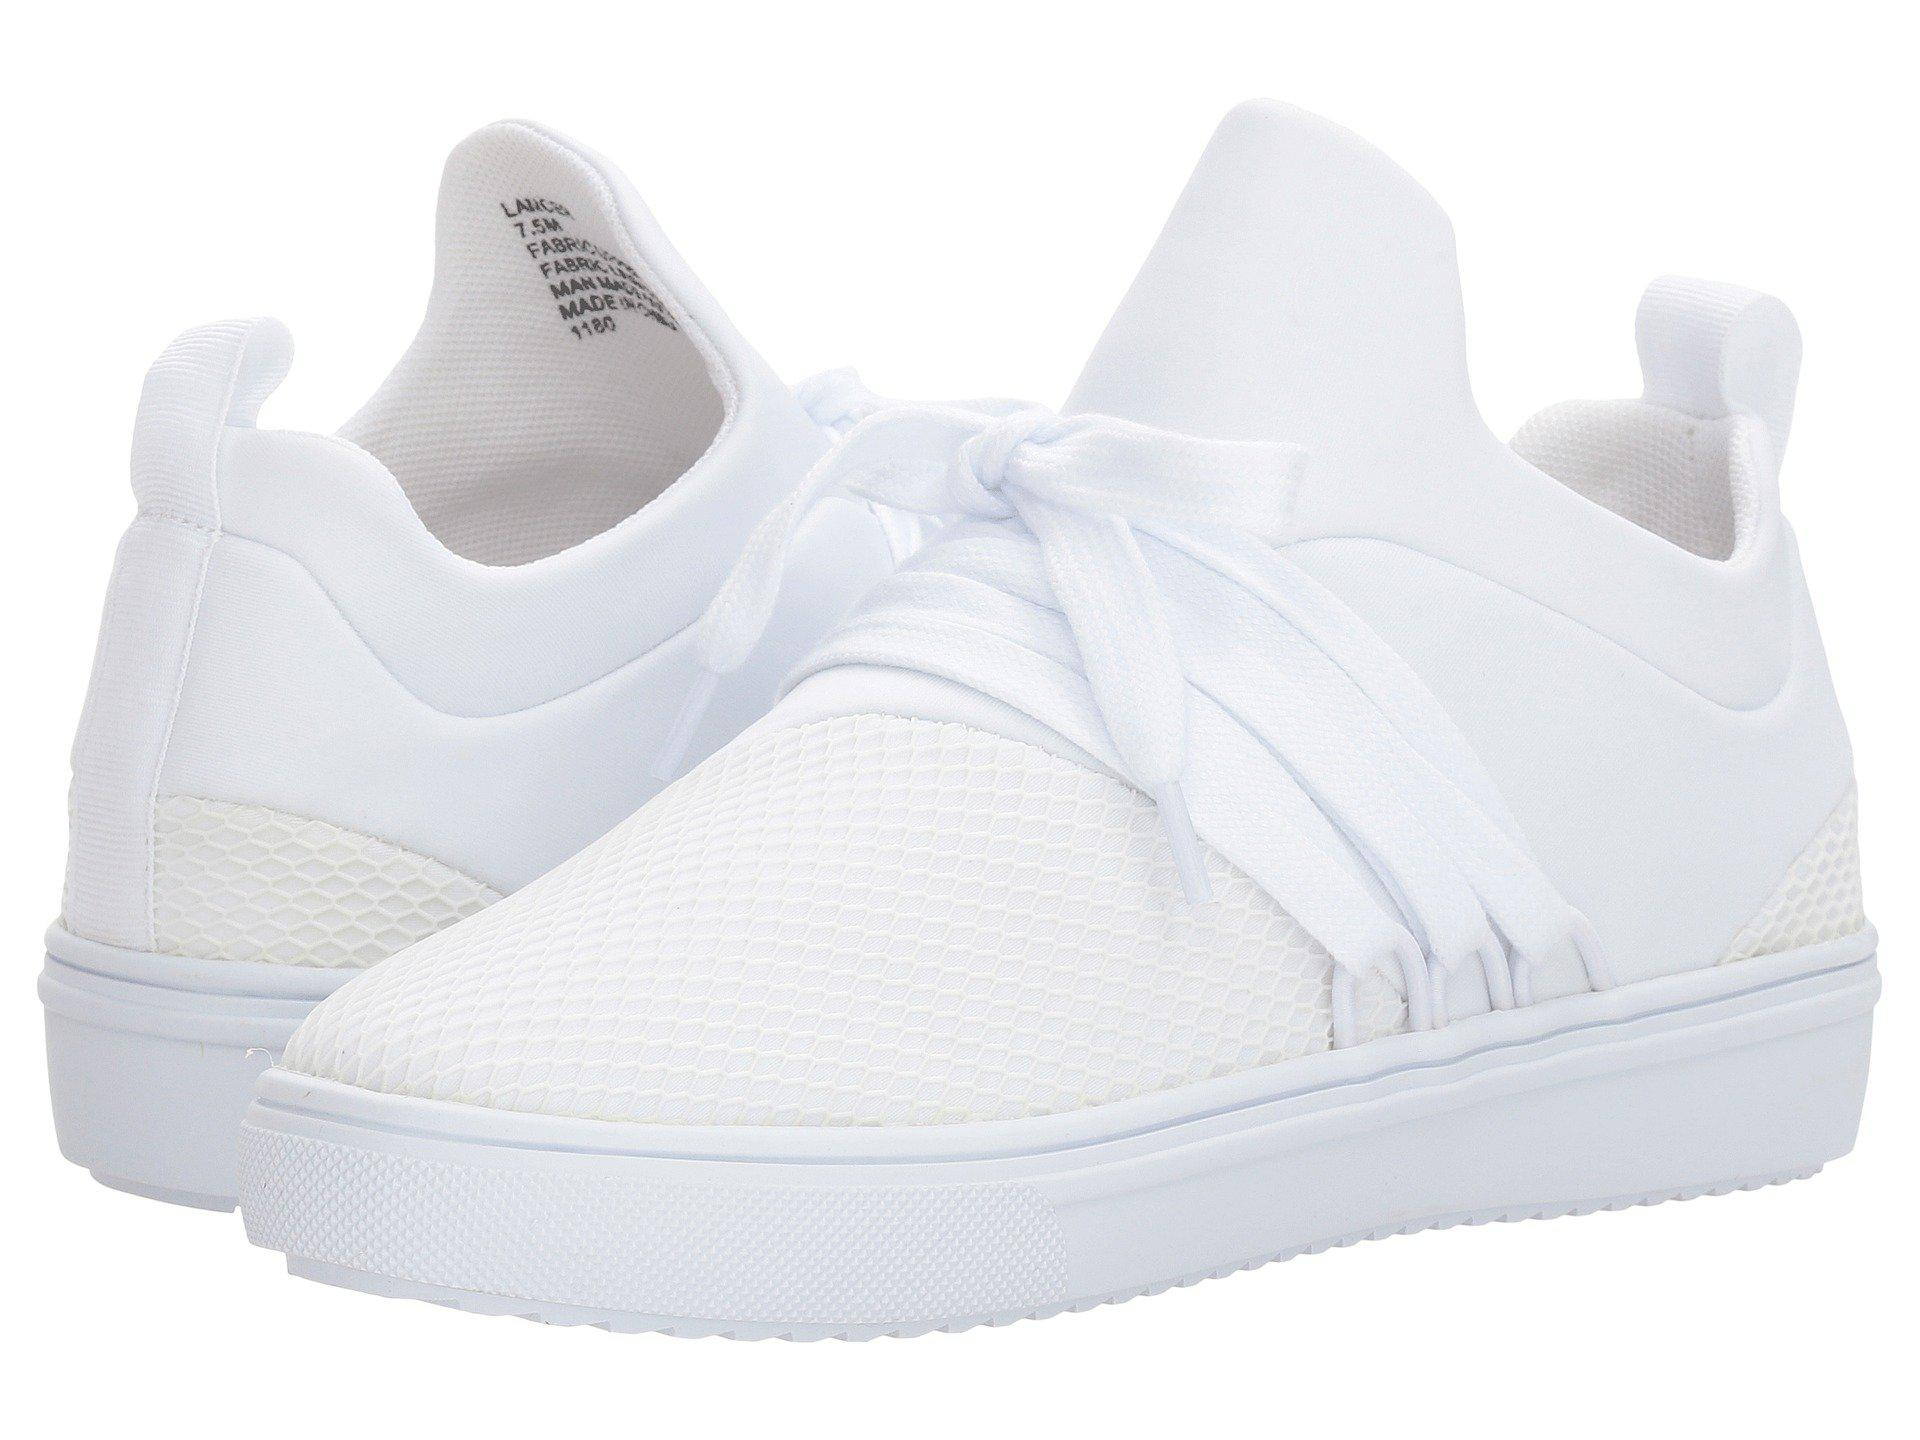 0980bda96f4 Lyst - Steve Madden Lancer Sneaker (white) Women s Shoes in White